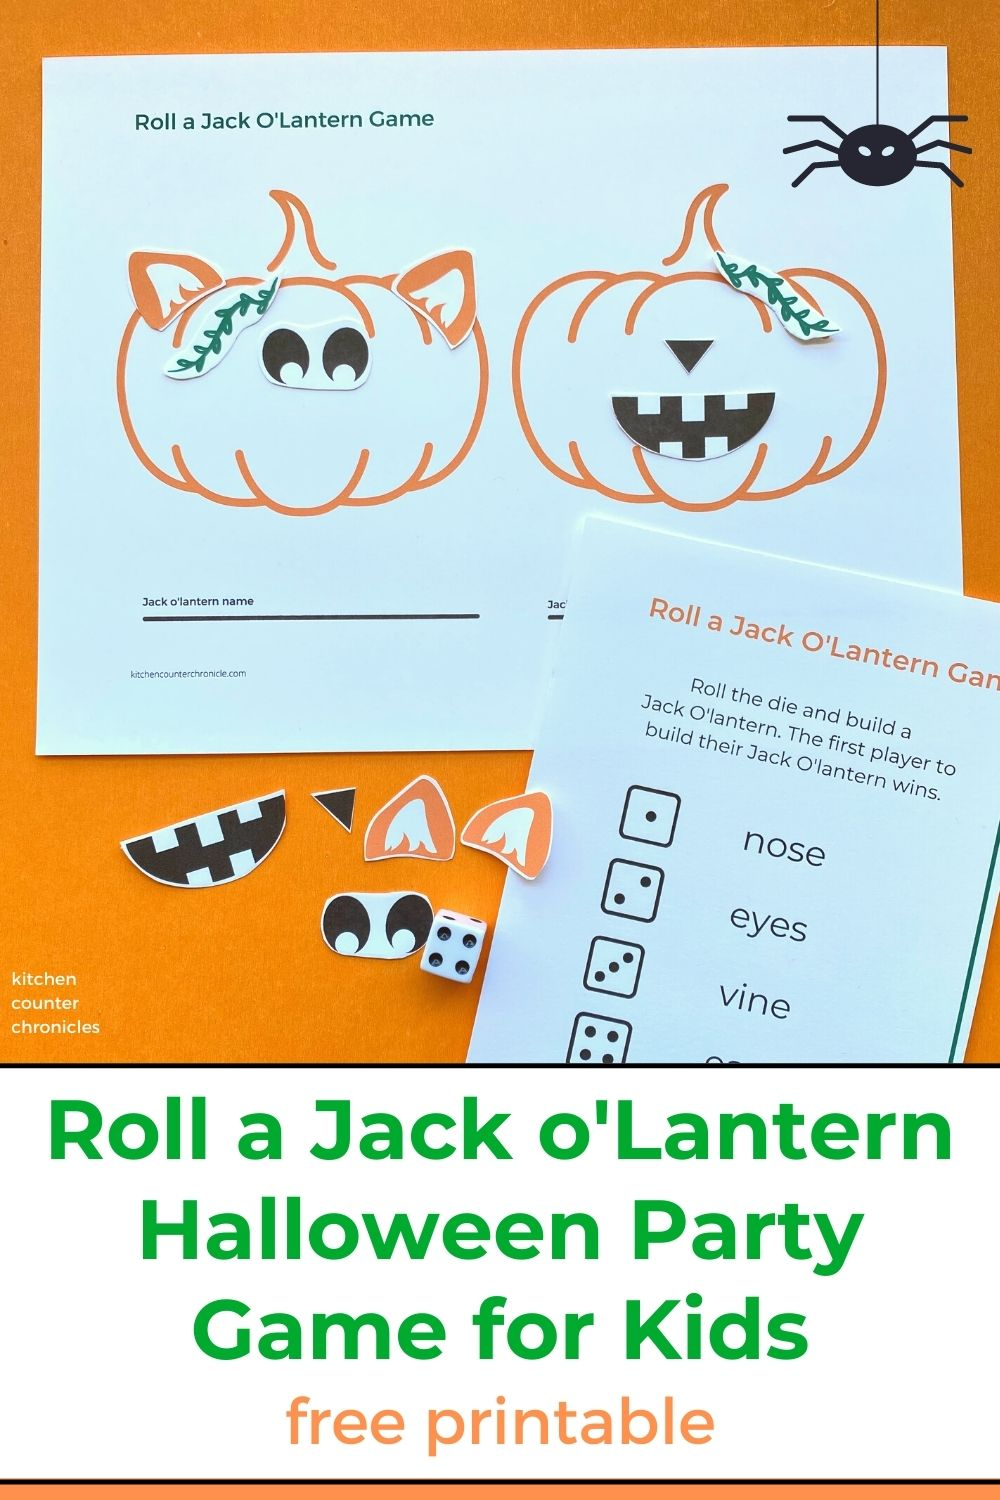 roll a jack olantern game halloween game for kids printed on paper with title